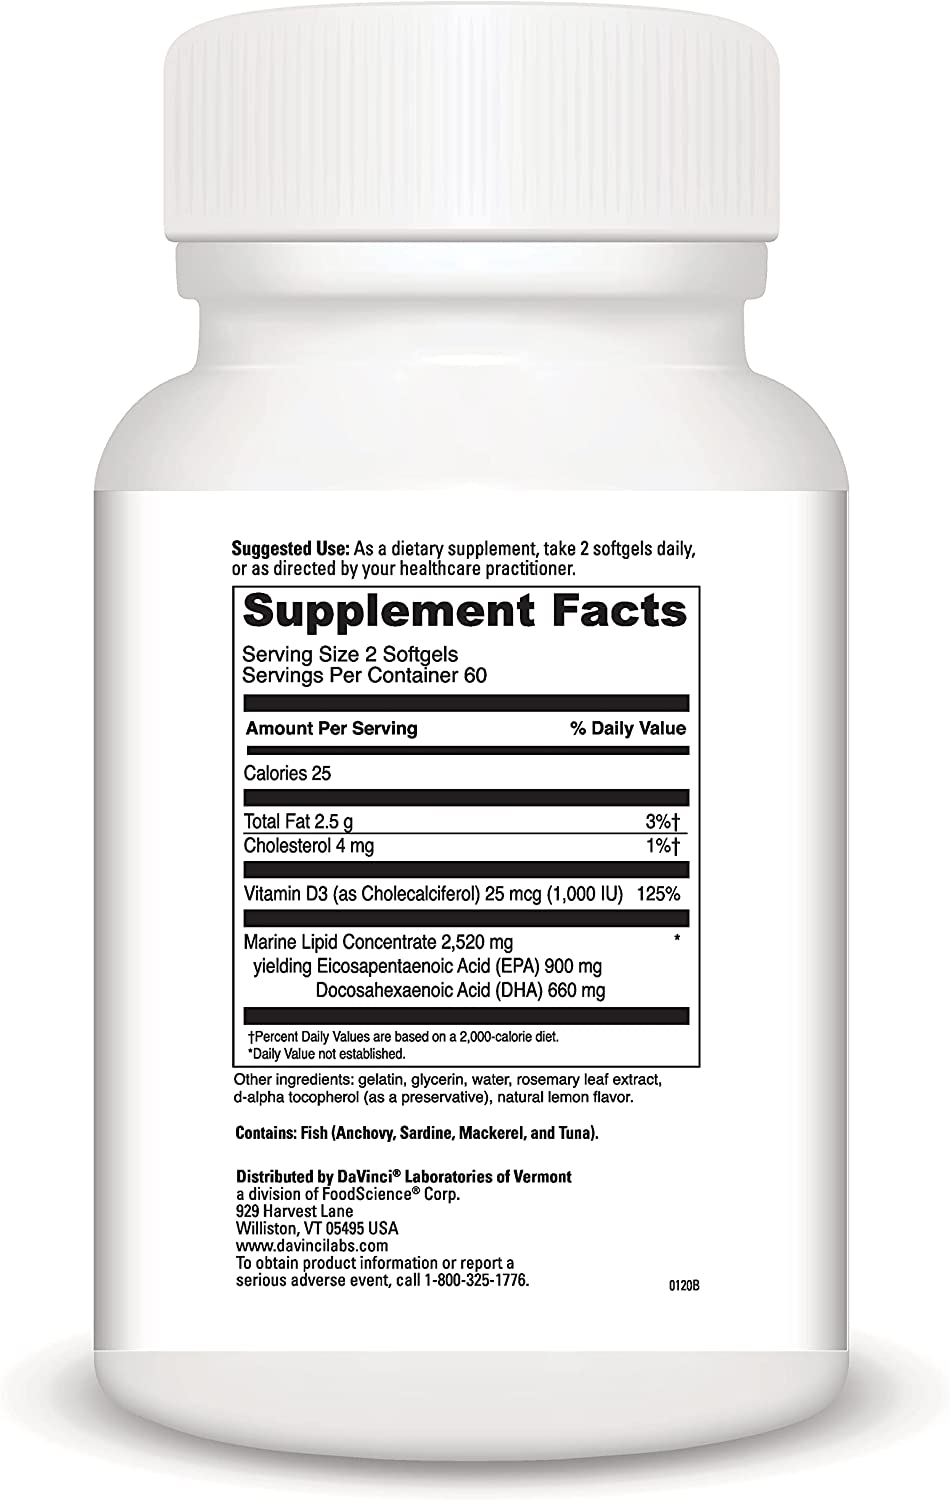 DaVinci Laboratories Omega 3 HP-D Fish Oil Supplement, Natural Lemon Flavor, 120 Count - High Yield Omega 3 with Vitamin D3